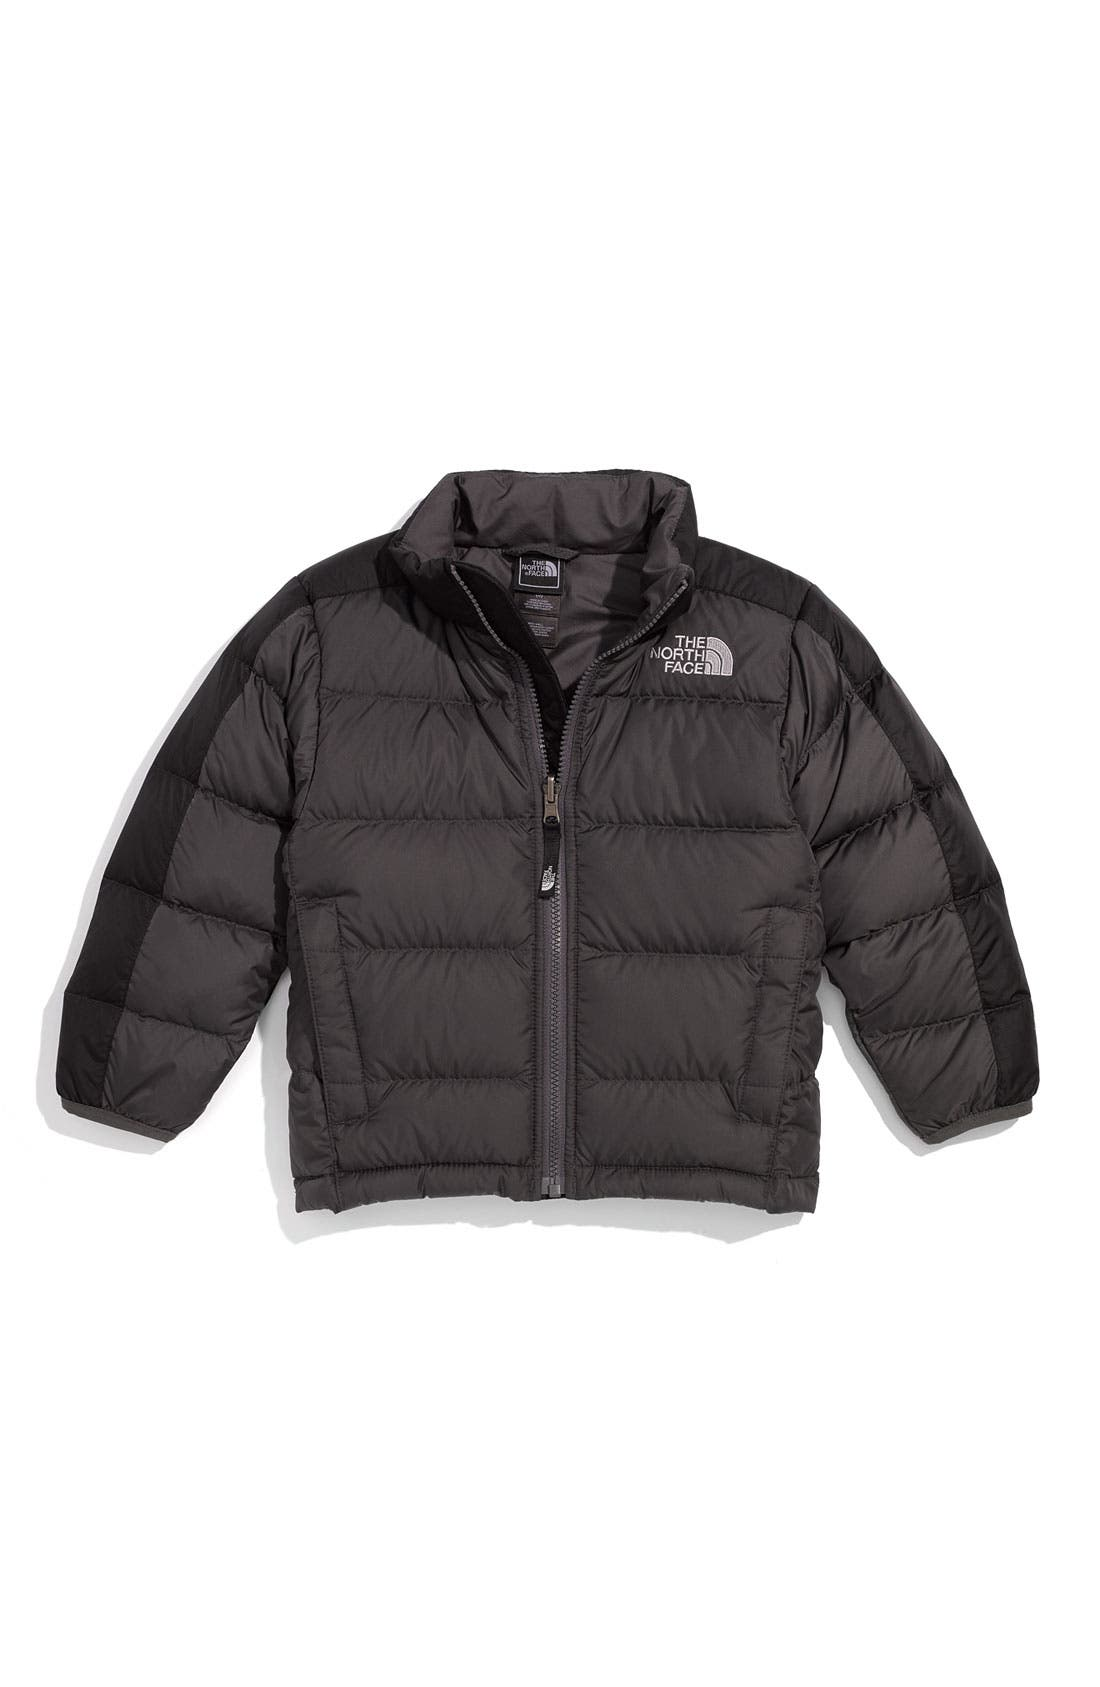 Main Image - The North Face 'Aconcagua' Jacket (Little Boys)